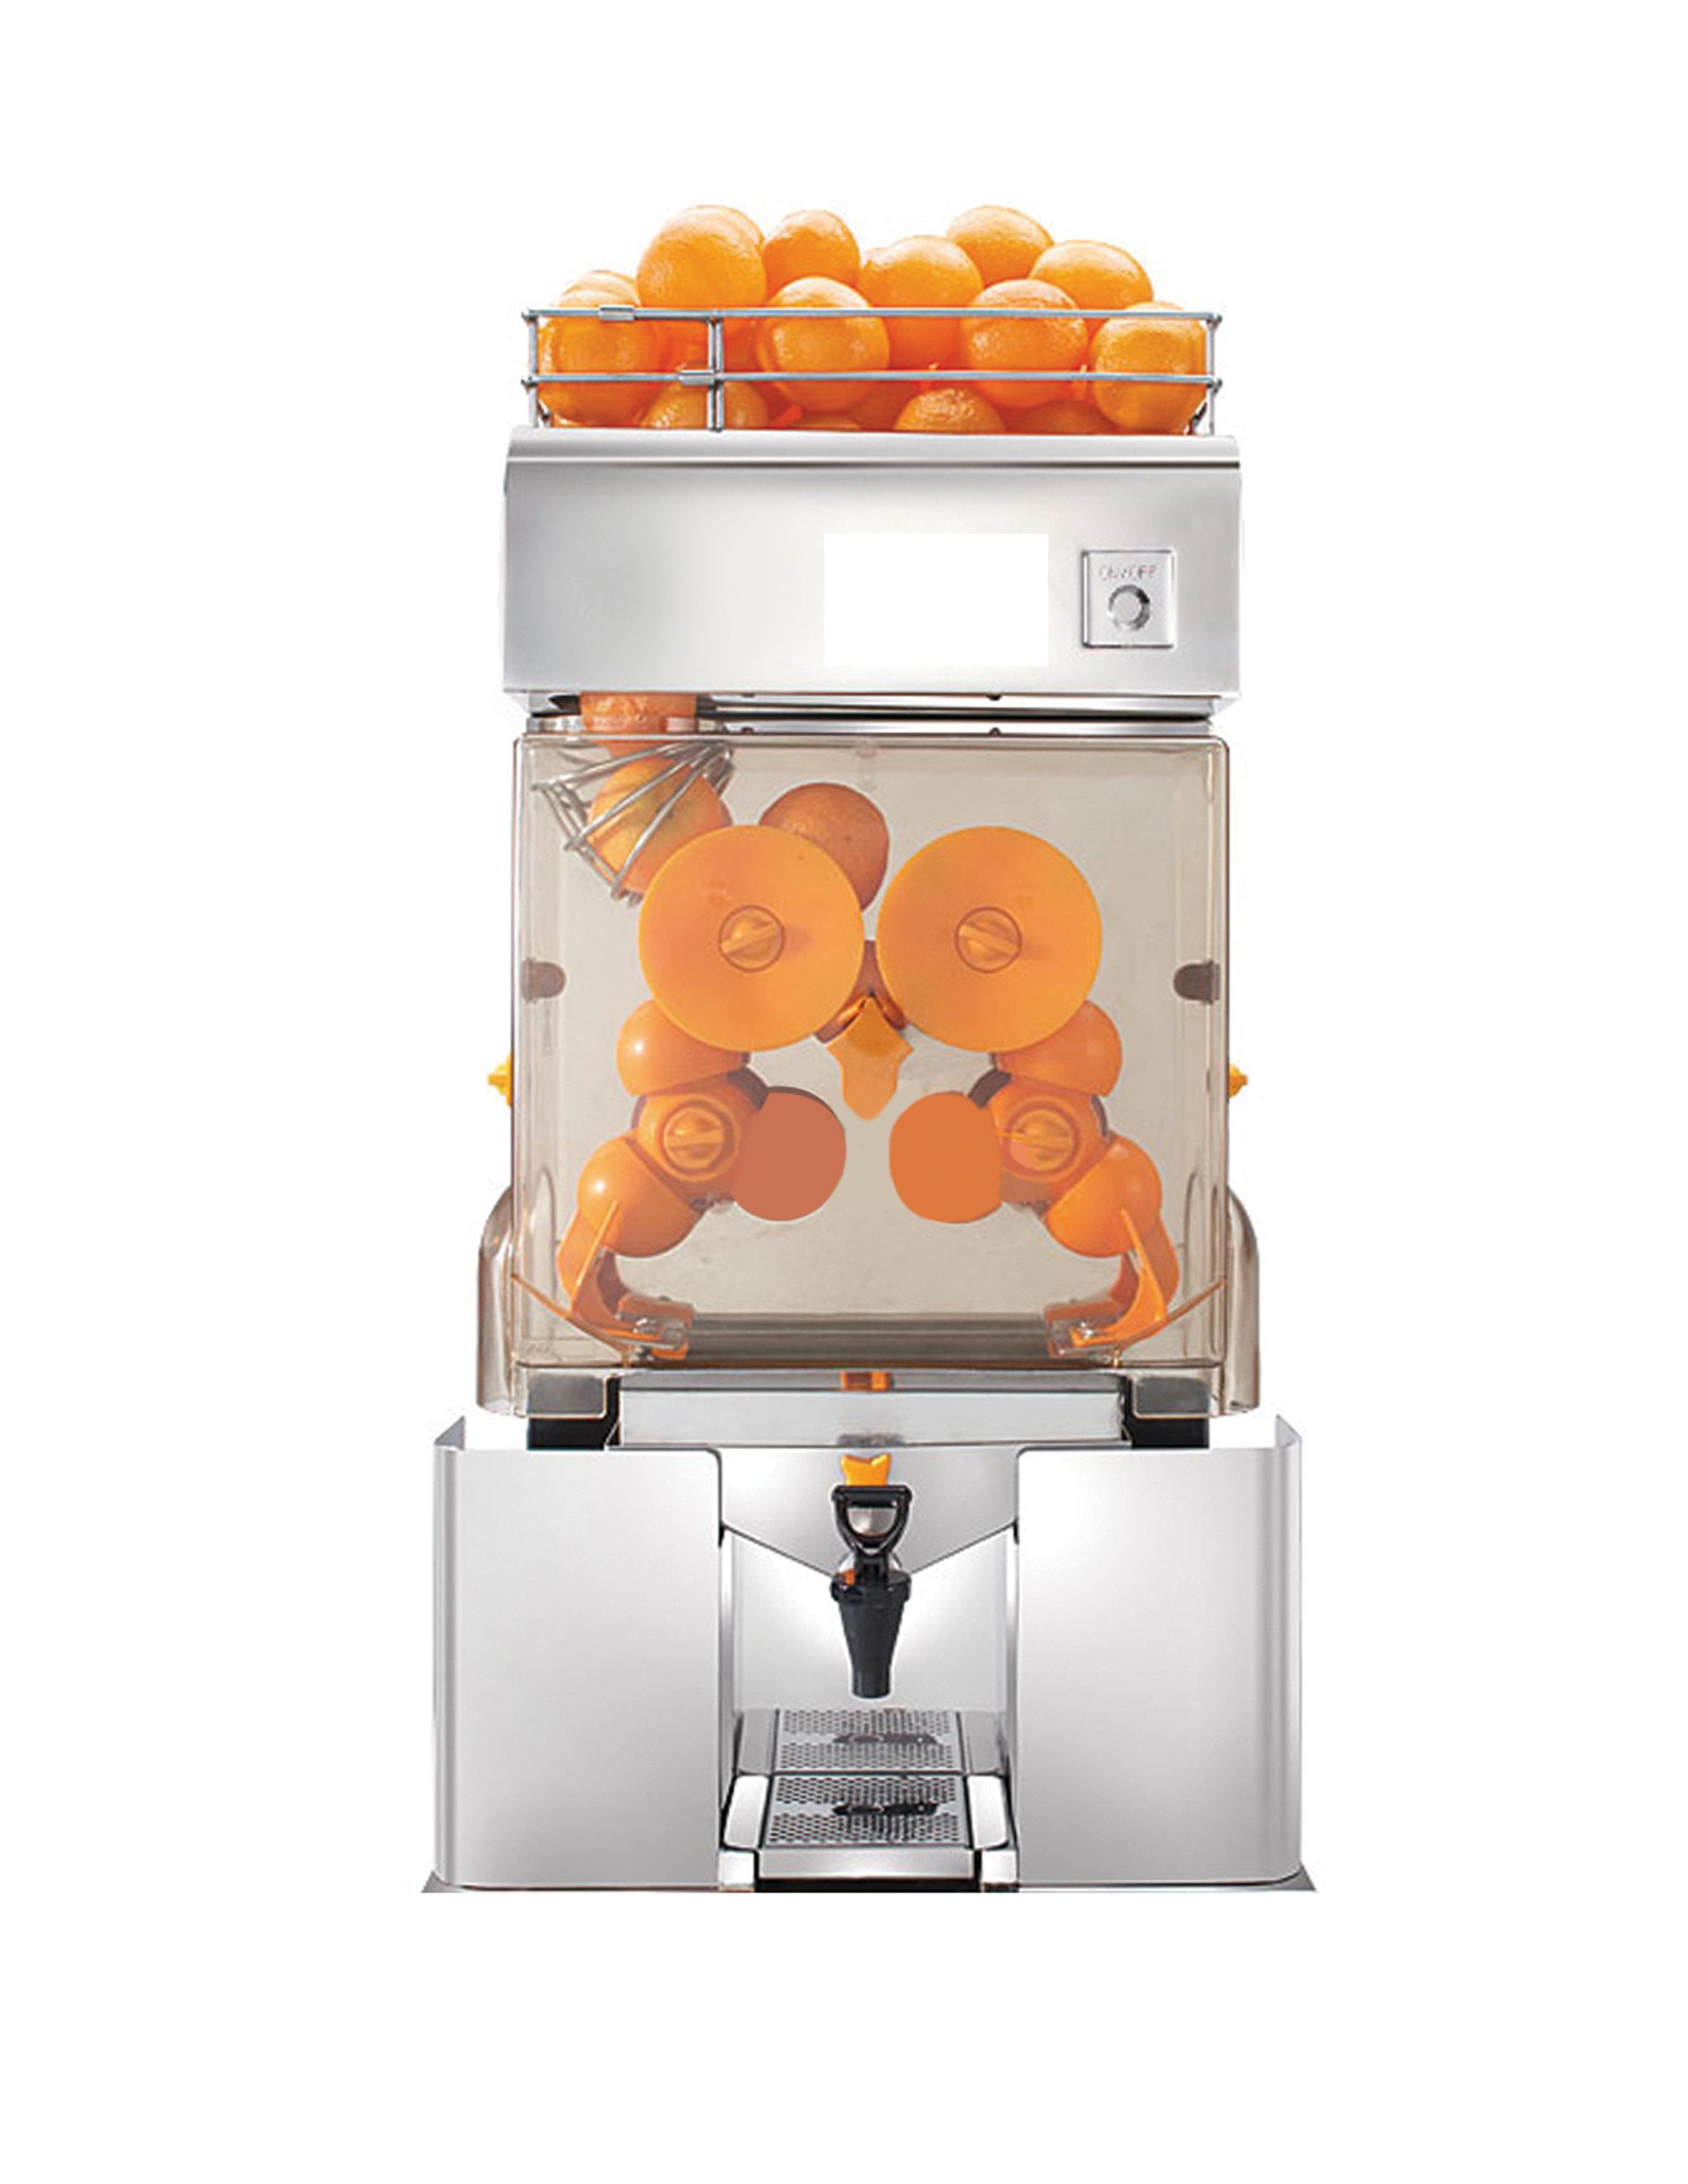 Cruz S20 Commercial Juicer